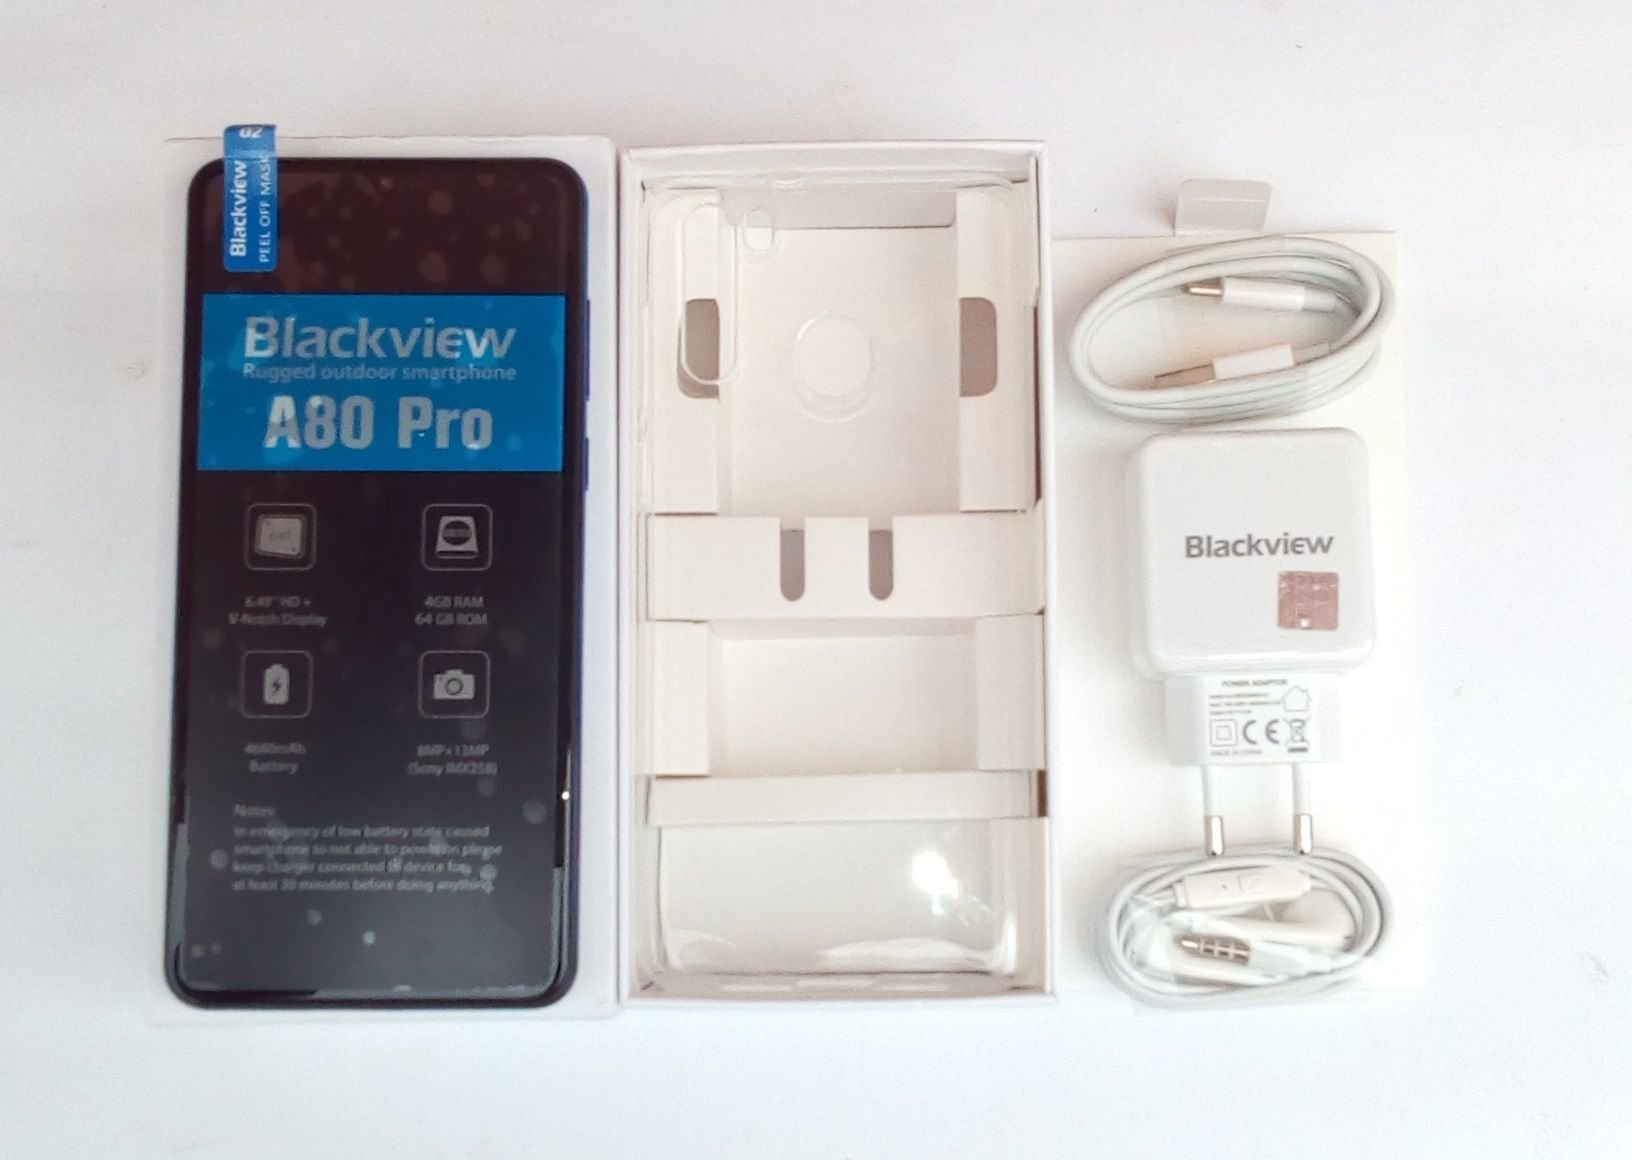 Blackview A80 pro box content